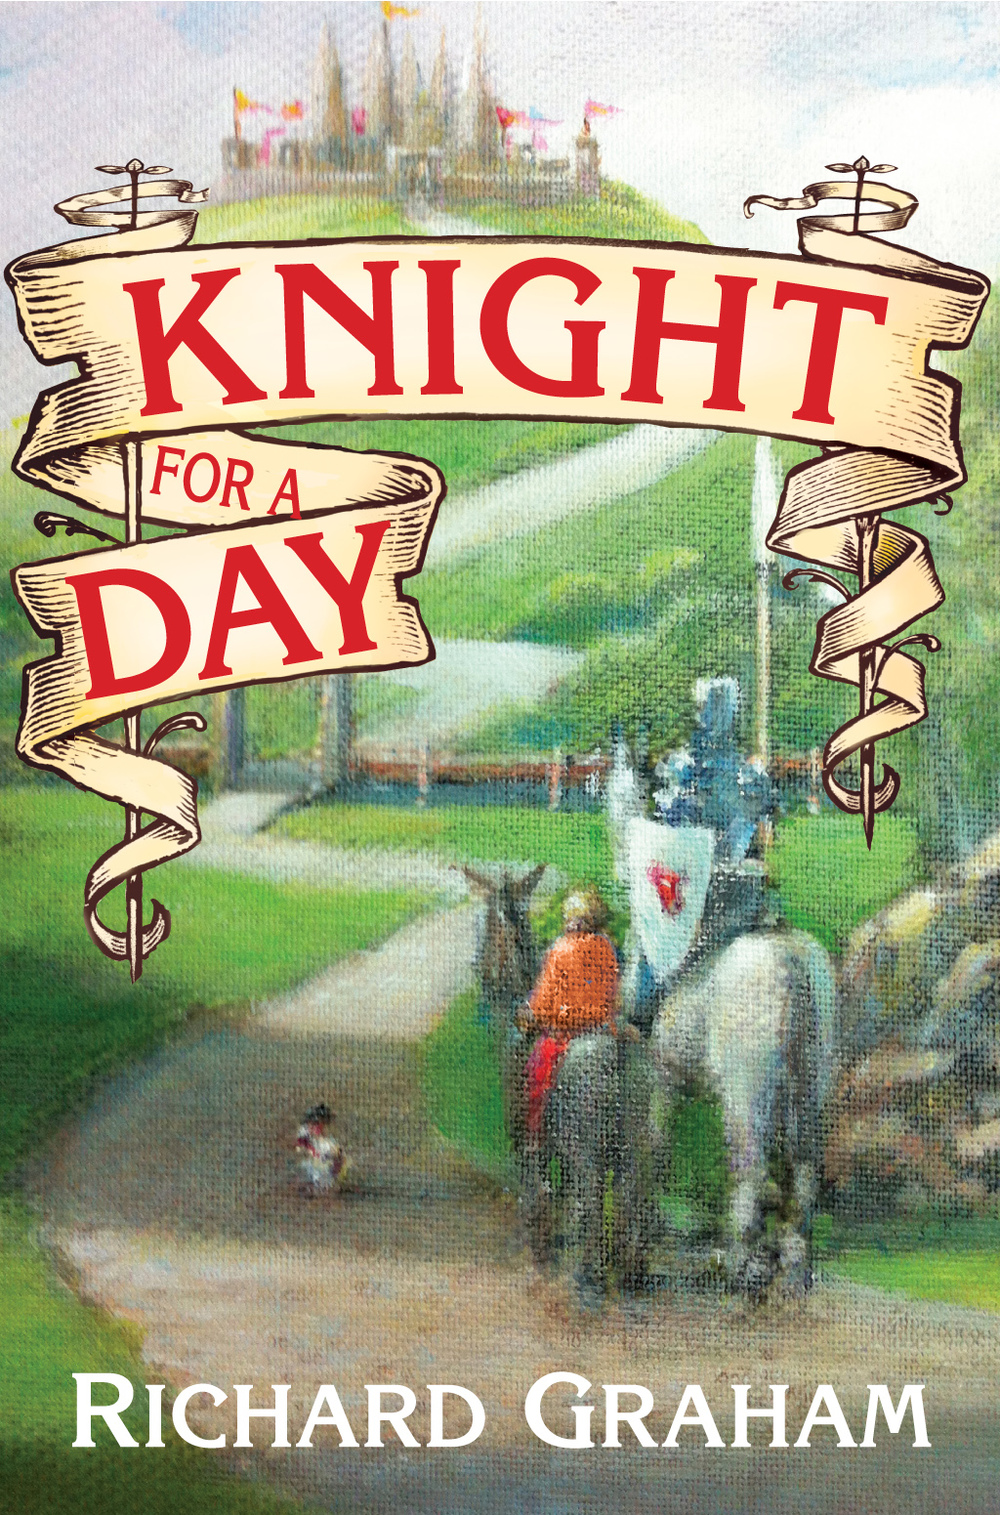 Knight For A Day by Richard Graham